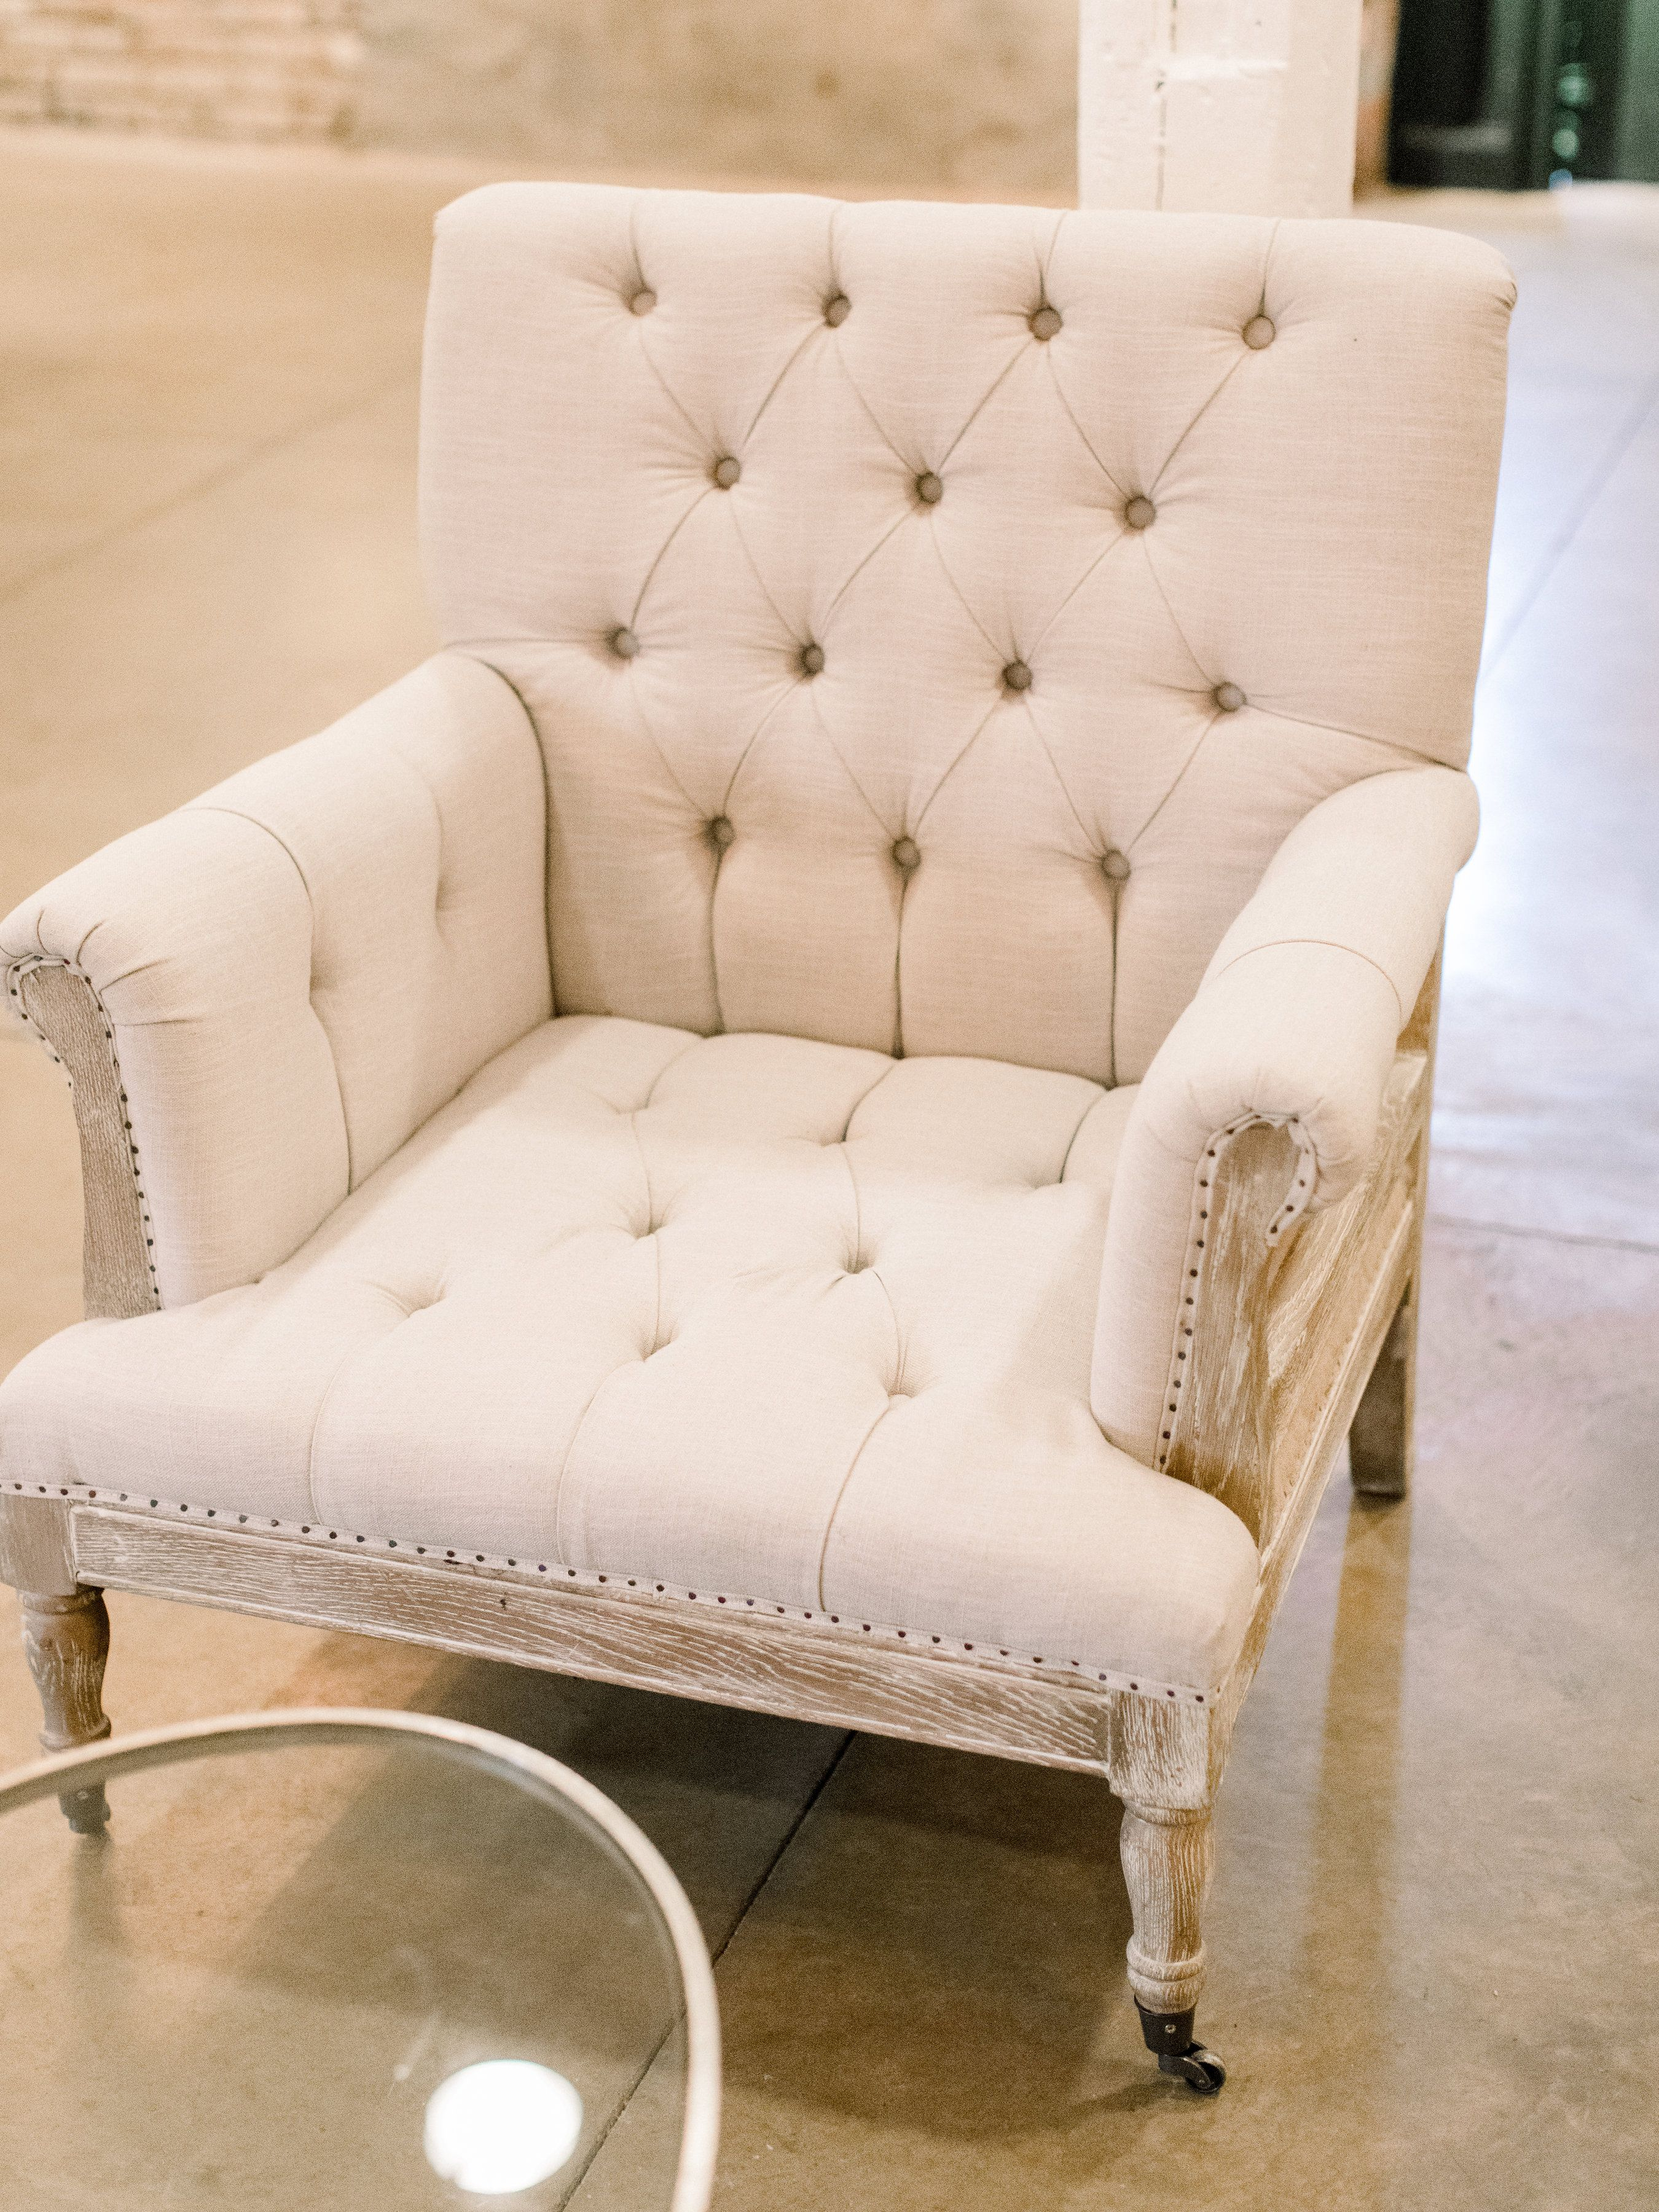 Chair Cover Rental Baltimore Pvc Mats For Carpet Wedding Inspiration Rentals White Glove Ft Rue Arm Planning Adriana Marie Events Photography Lauren Fair